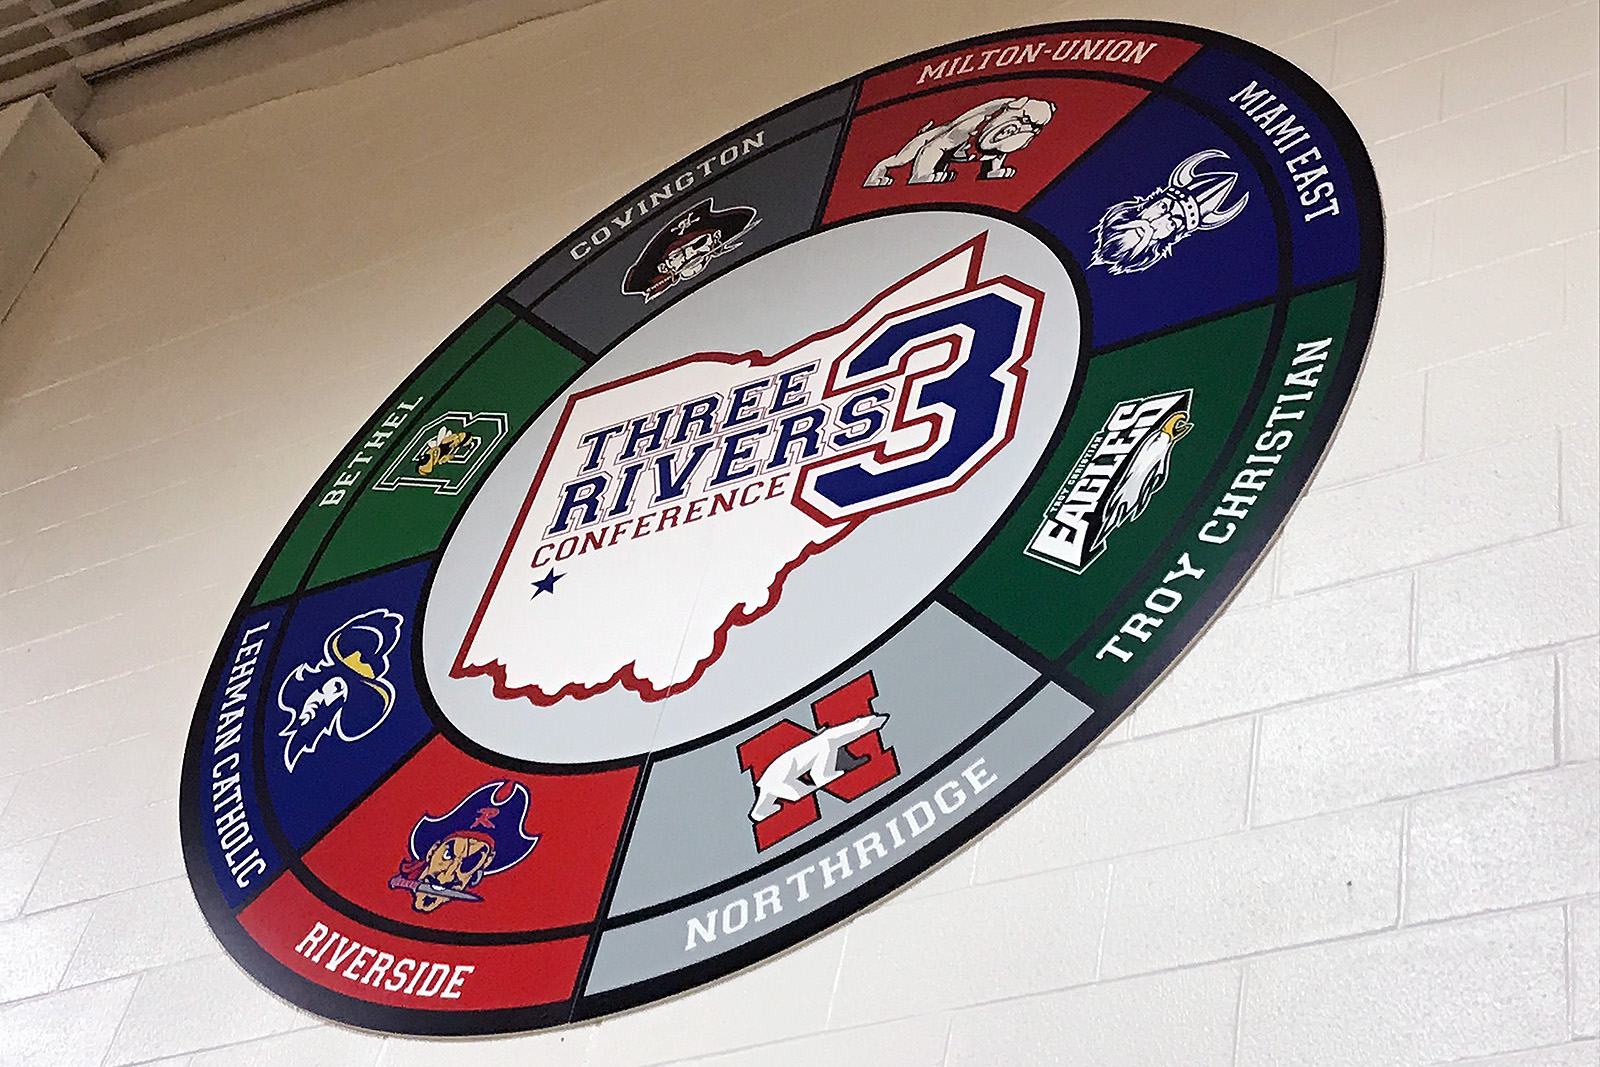 Three Rivers Conference Branding